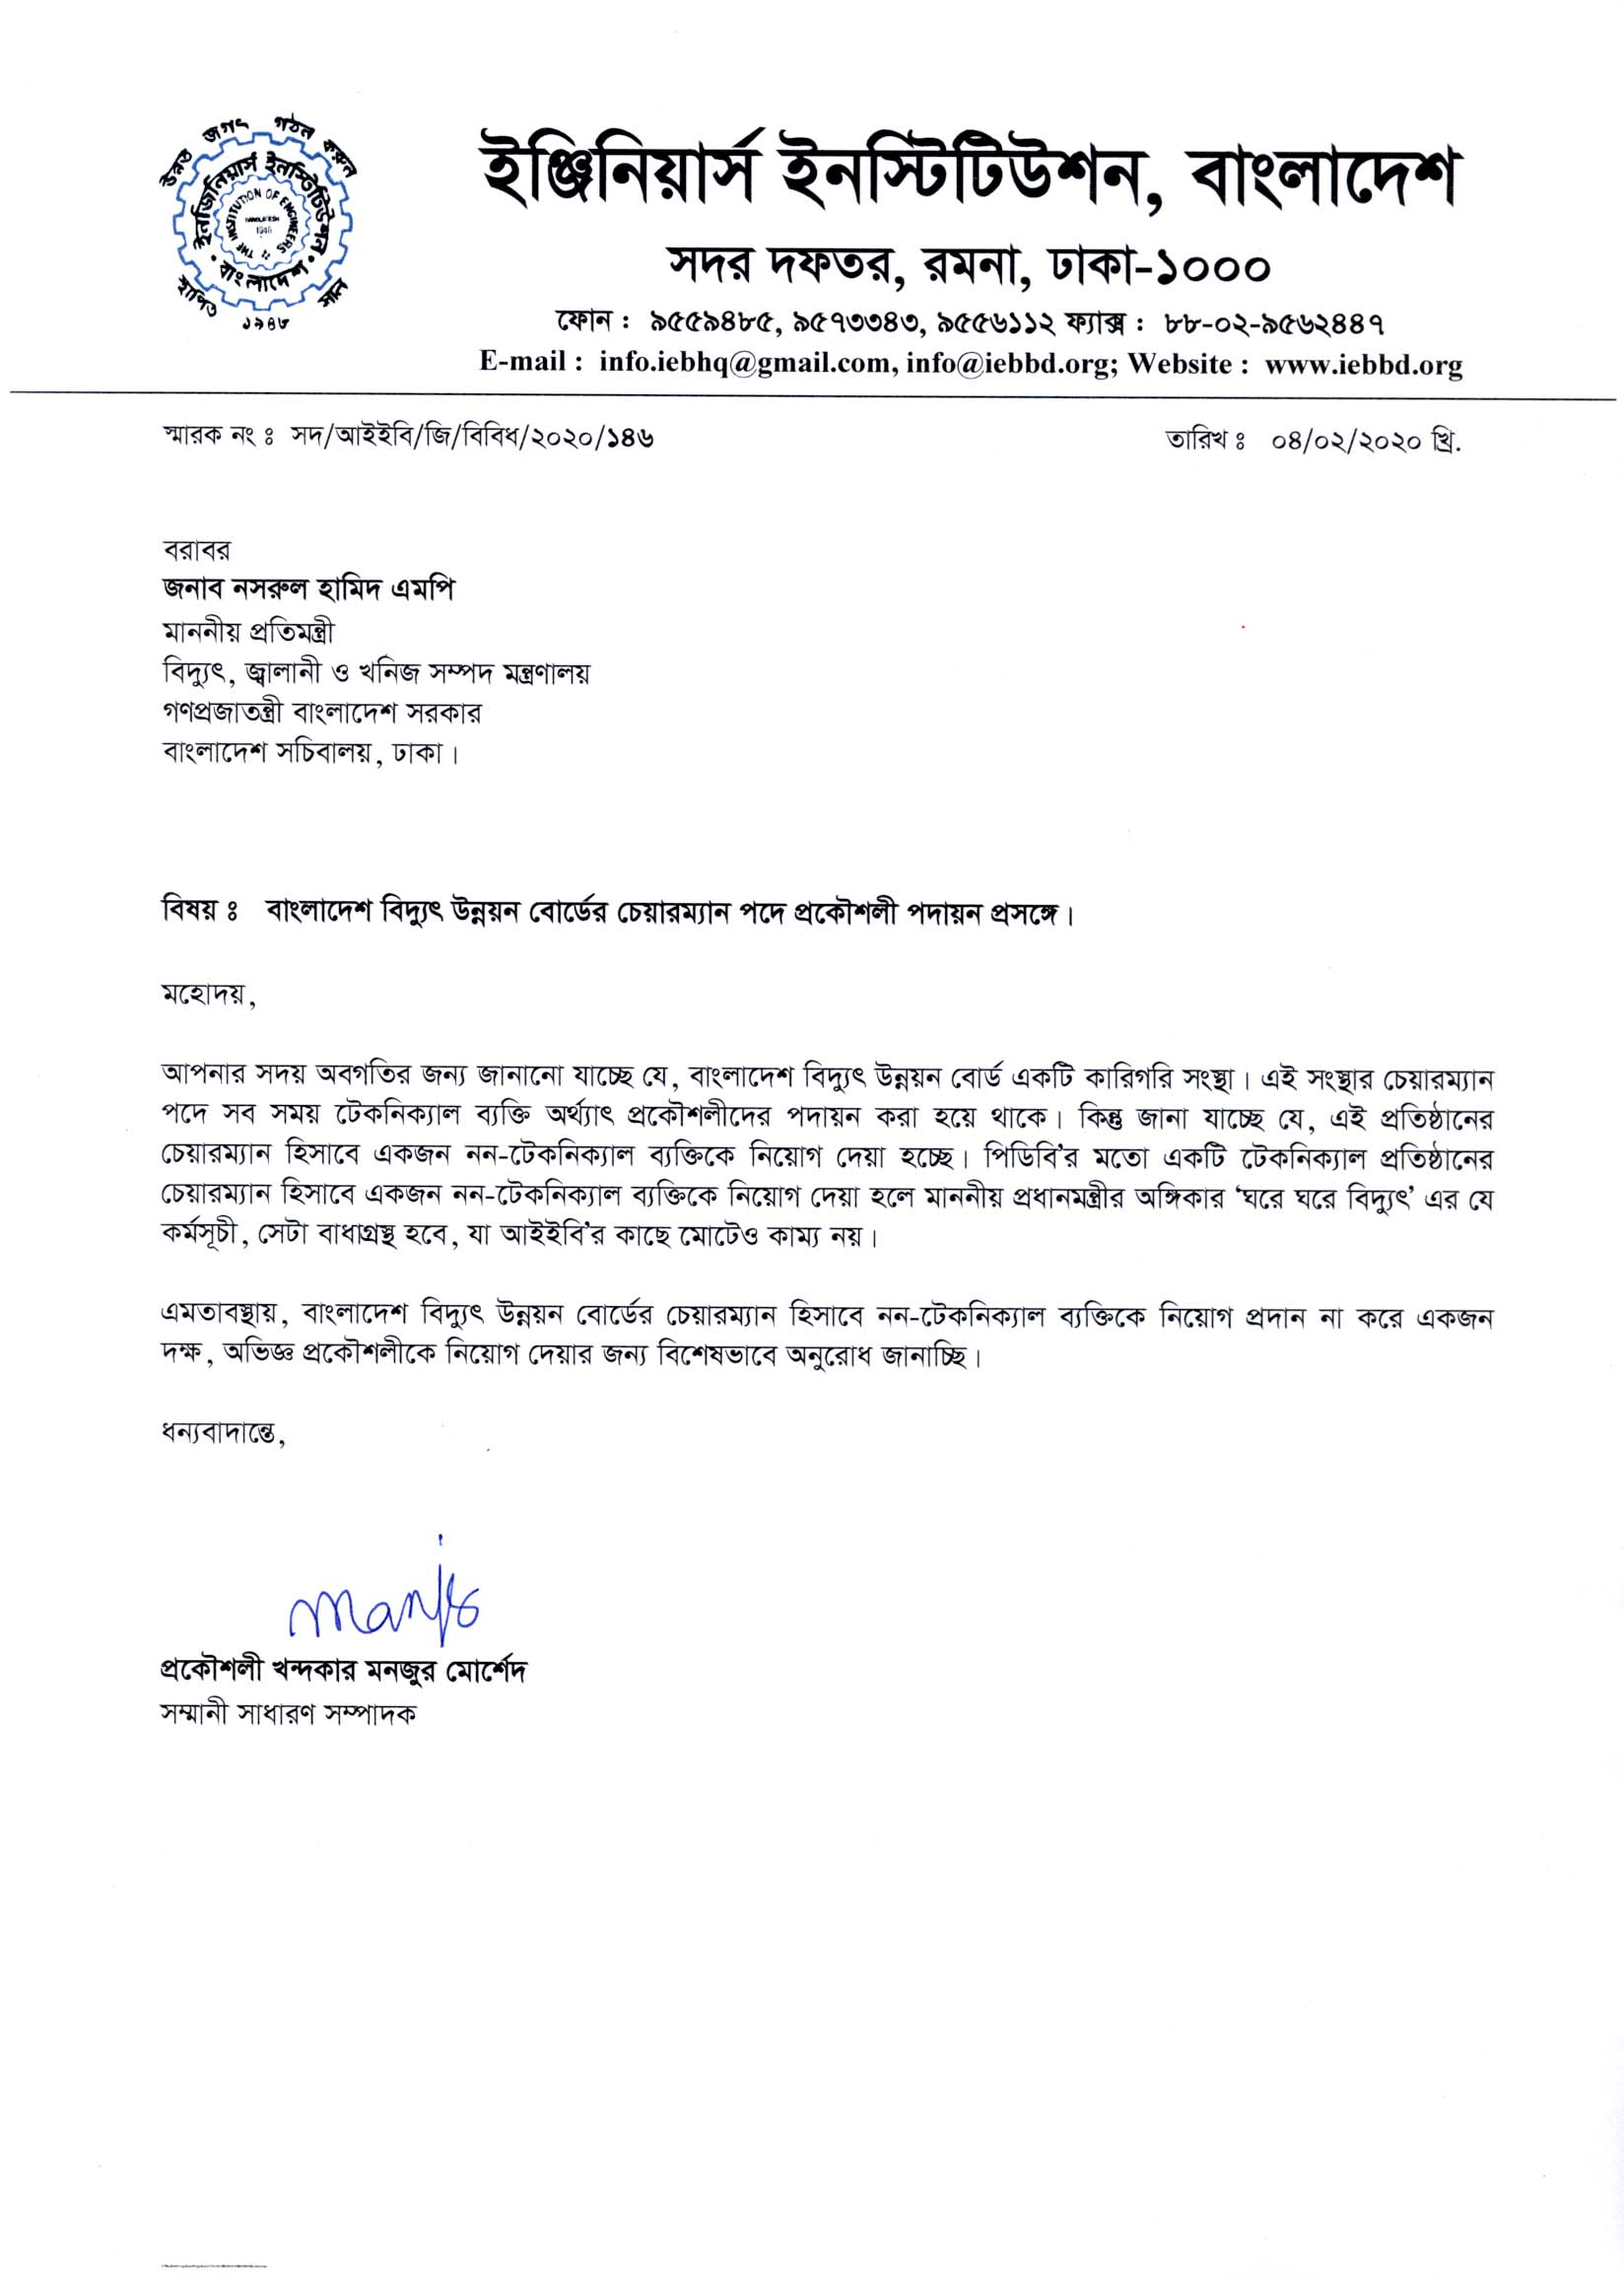 Issuing a letter by the IEB regarding the appointment of Engineer to the post of Chairman of BPDB